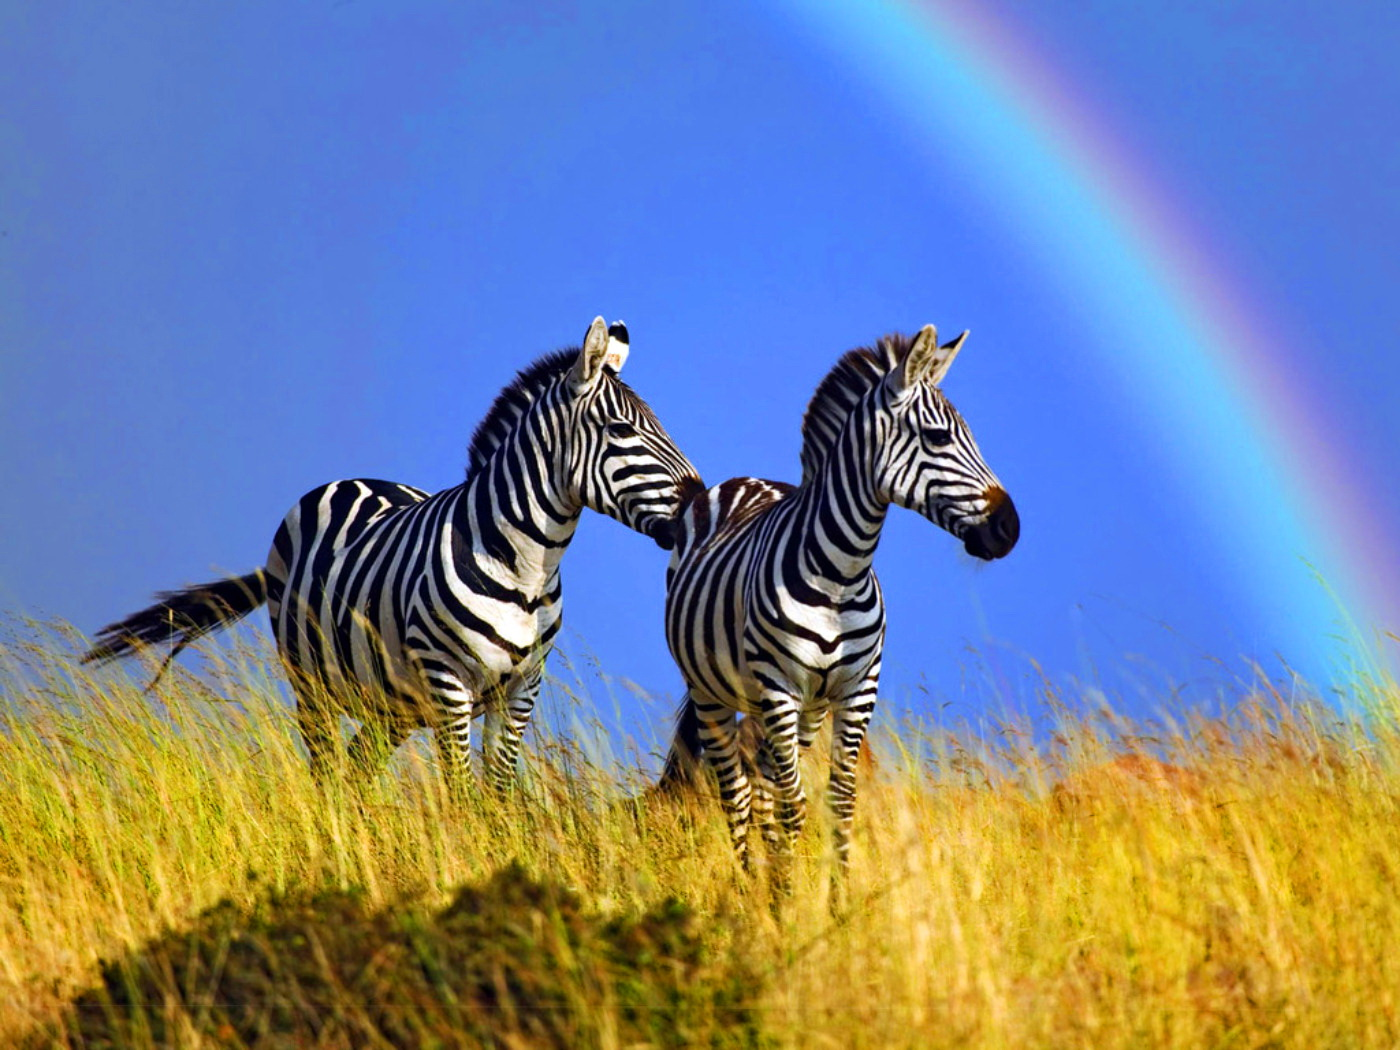 Beautiful Animal Zebras Wallpaper 3